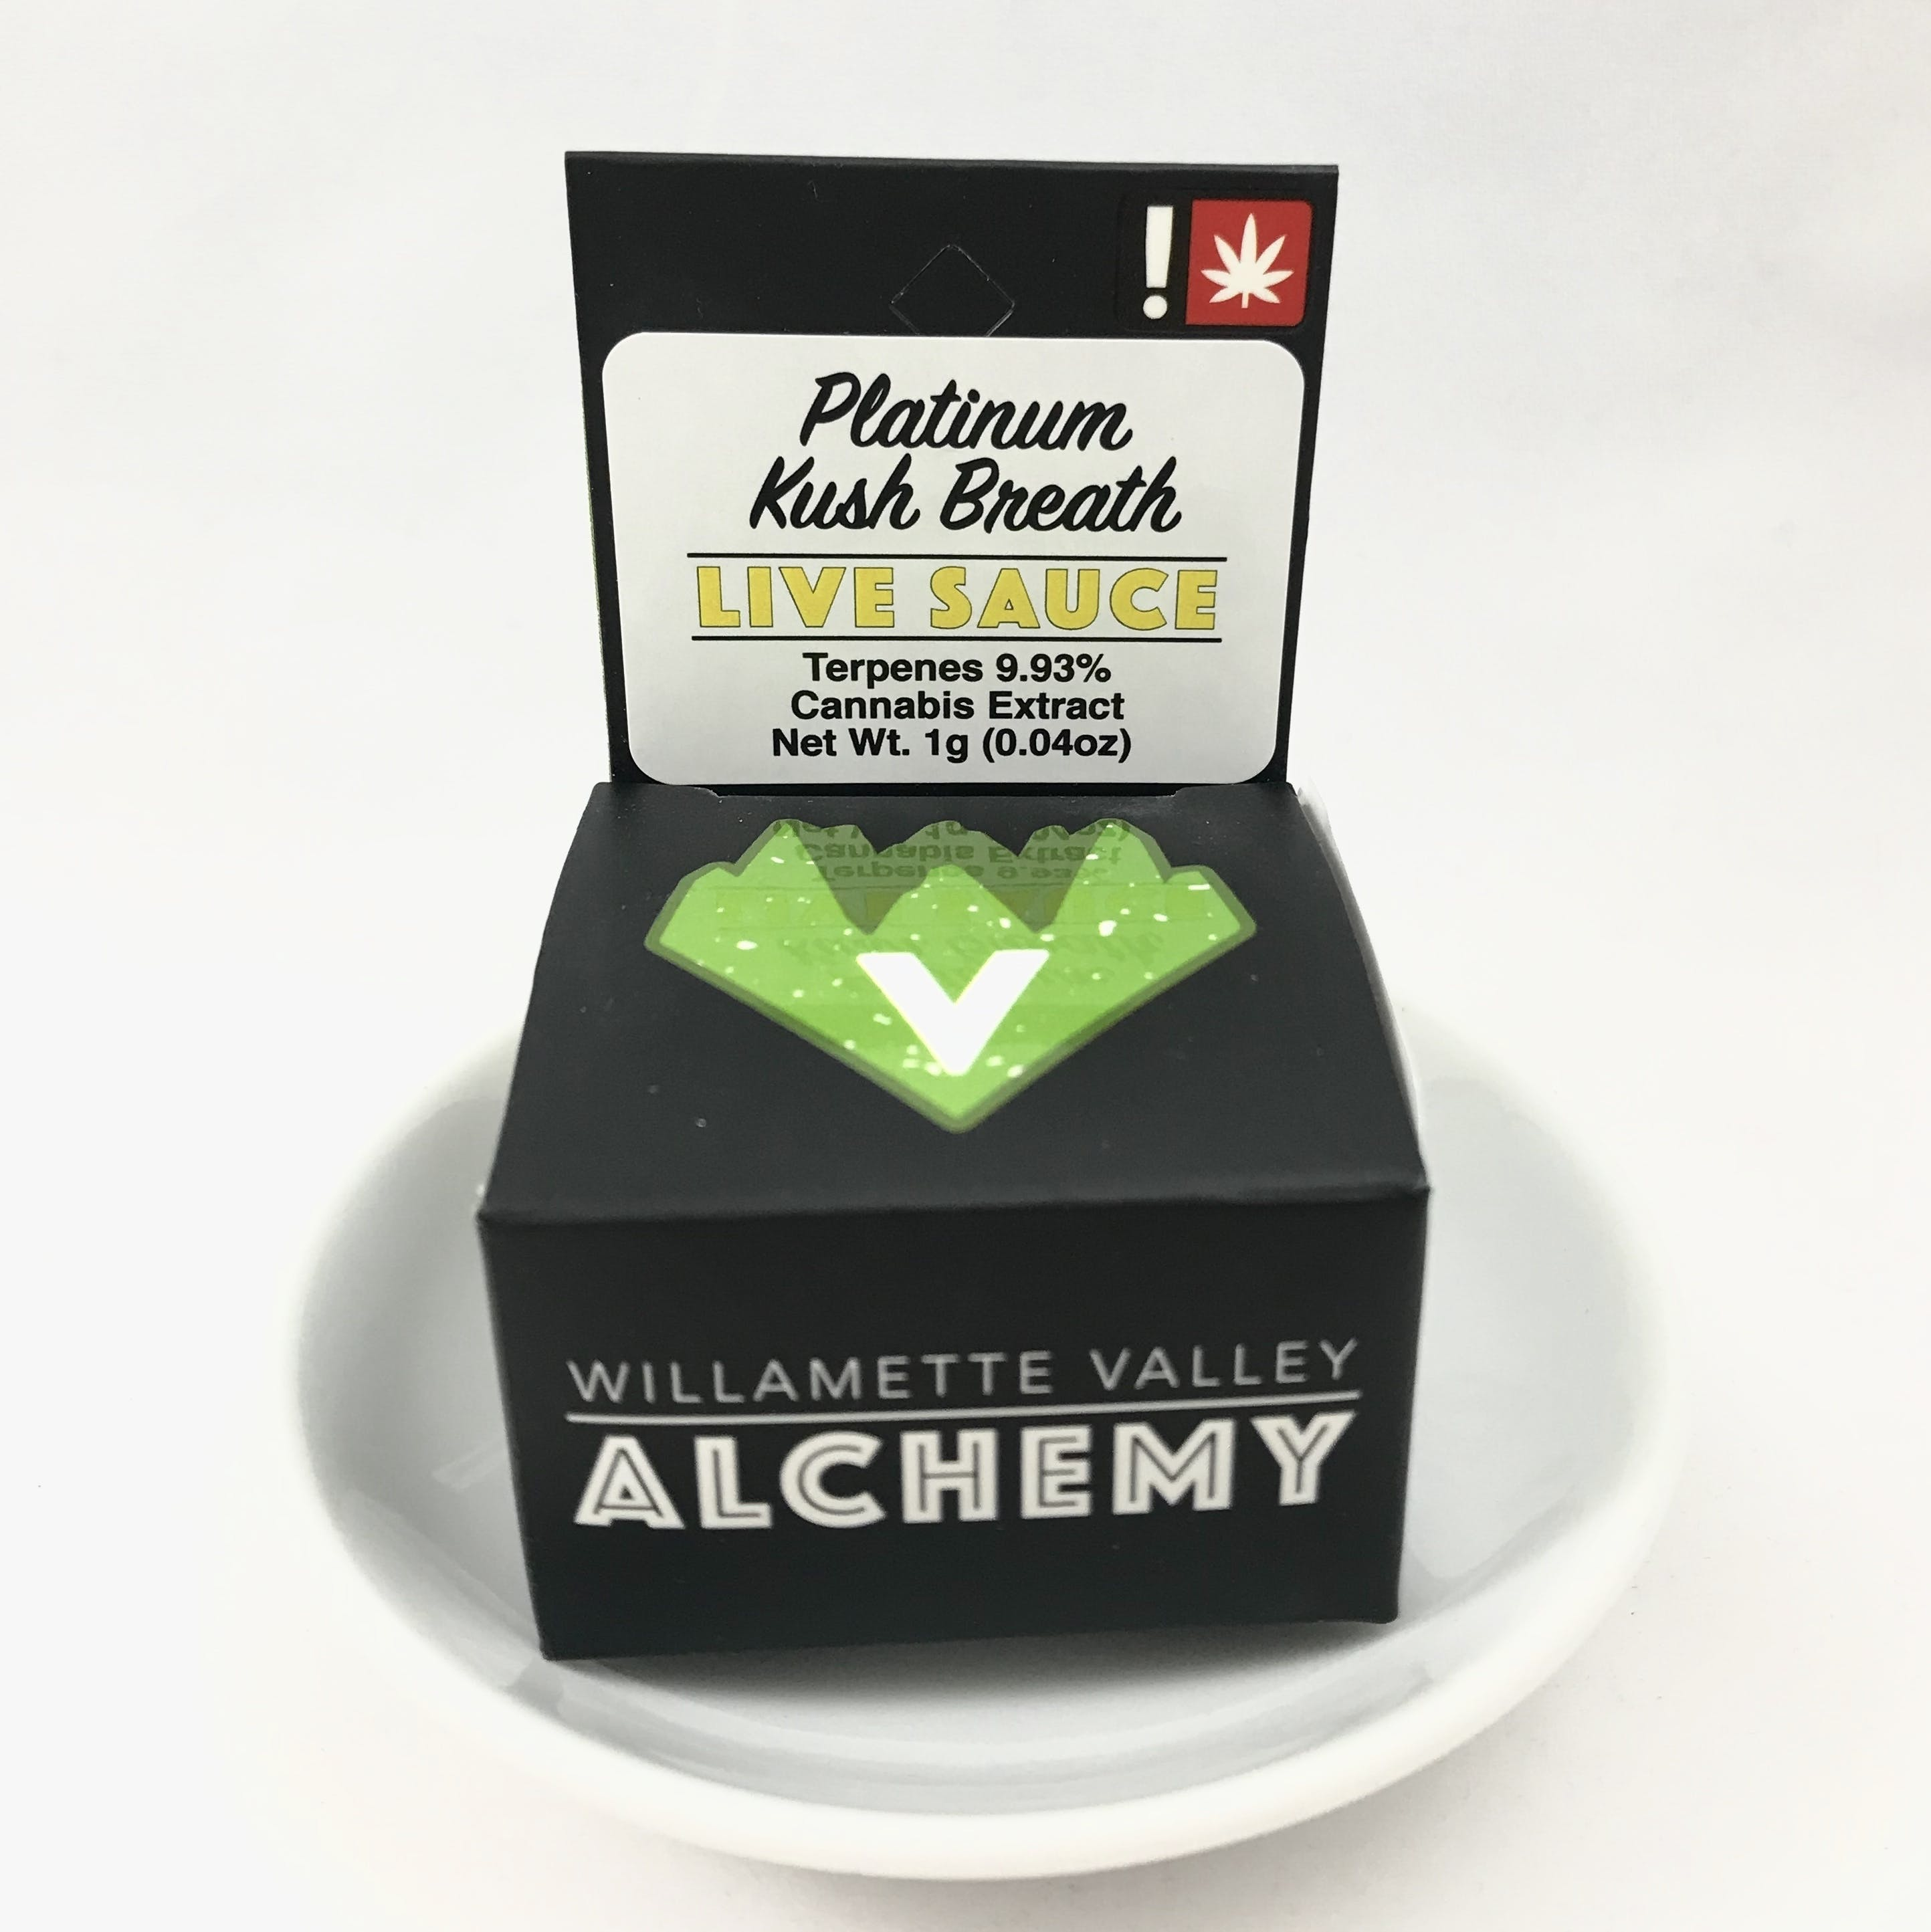 WILLAMETTE VALLEY ALCHEMY- Platinum Kush Breath Live Sauce